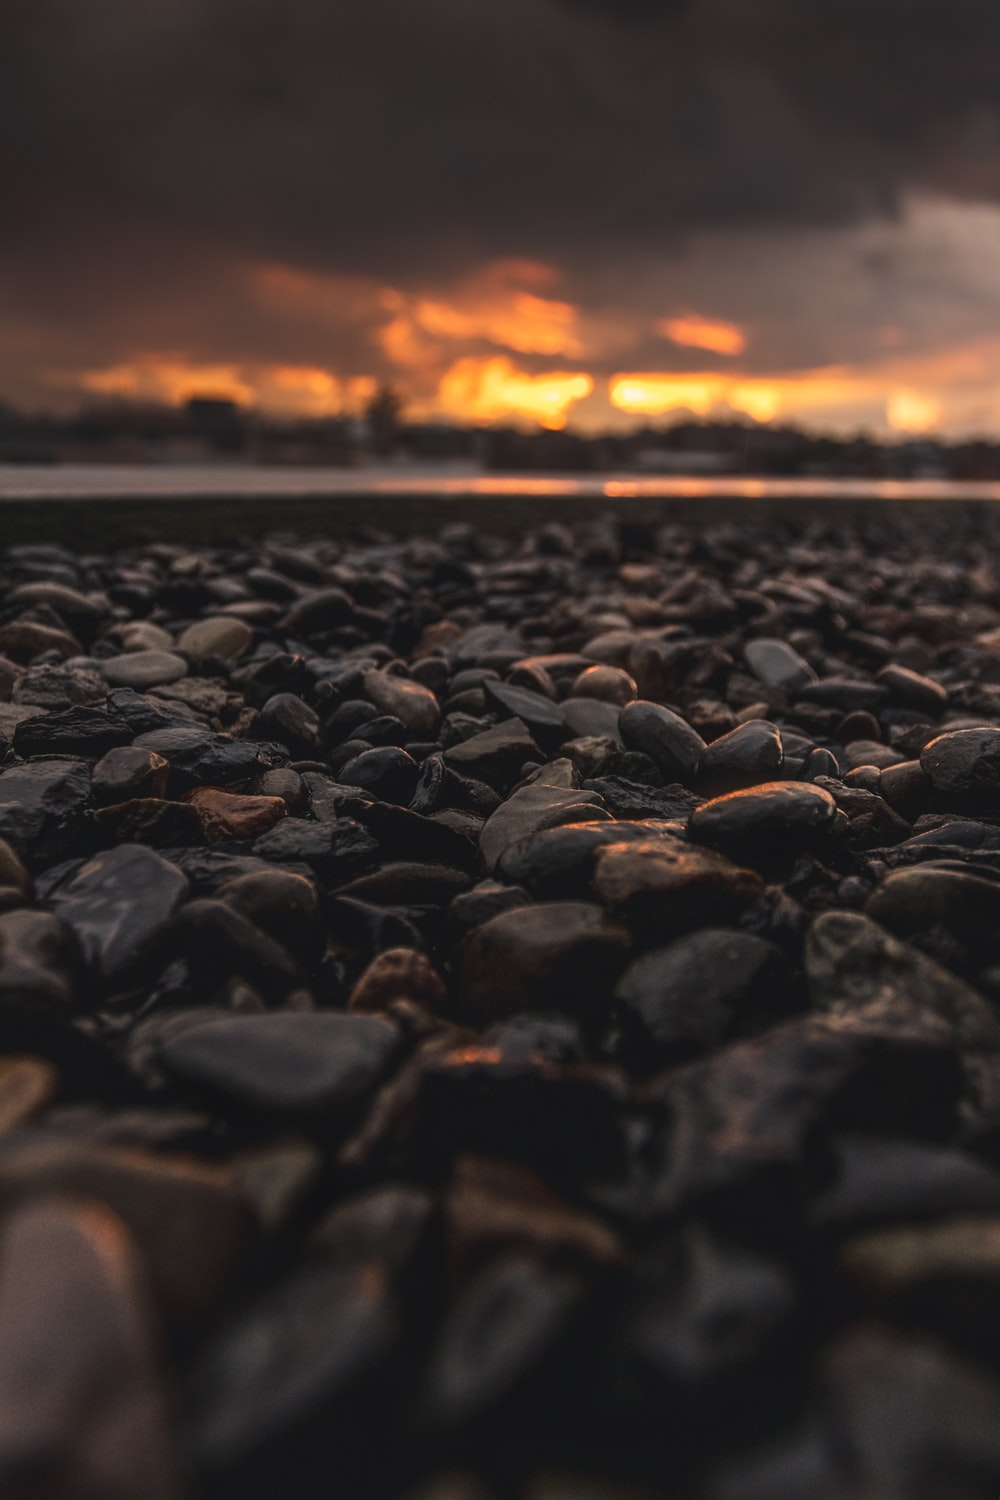 Black Stones On The Beach During Sunset